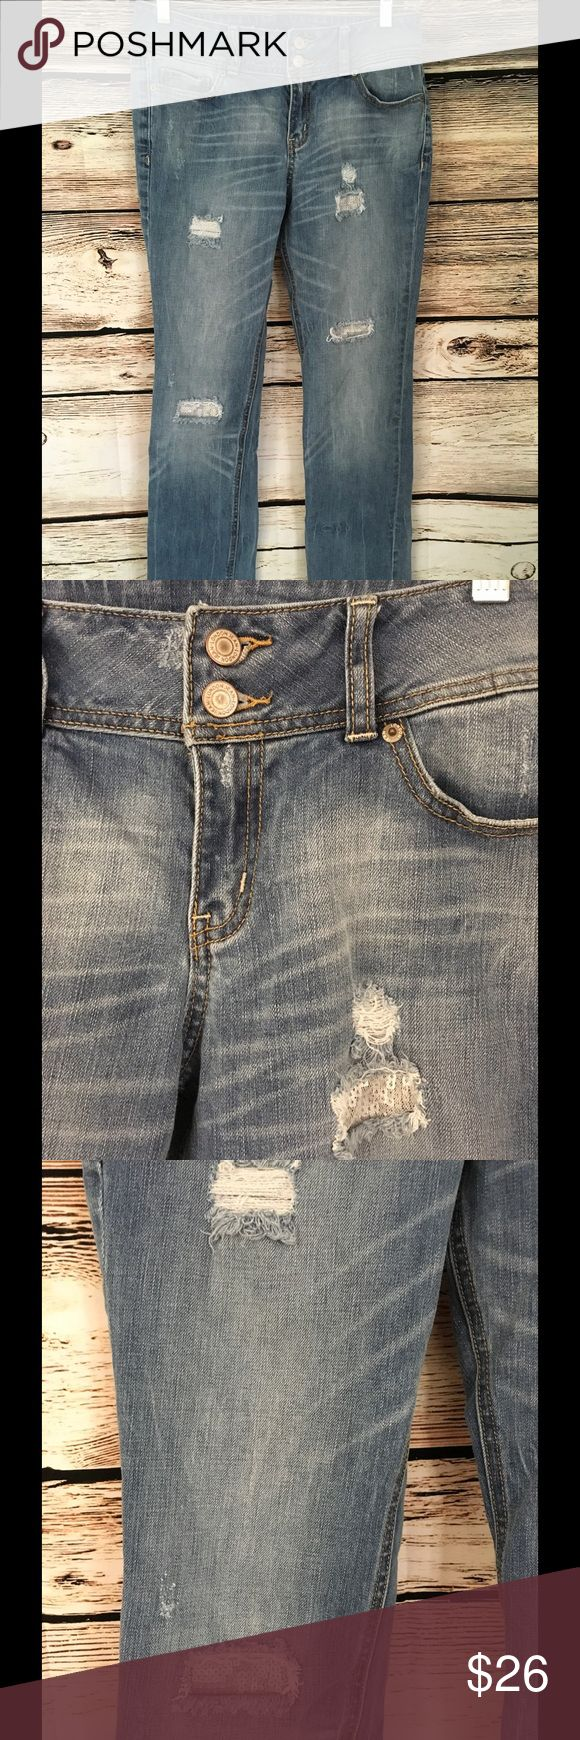 "Victoria Secret Hipster Size 8 Women's Jeans Double Button Close Zip Fly Distressed Look Some distressed areas have mesh and sequins 98% Cotton / 2% Spandex Measurements: Waist - 16"" (doubled 32"") Front Rise - 9.5"" Inseam - 33.5"" Leg Opening - 7.5"" Victoria's Secret Jeans"